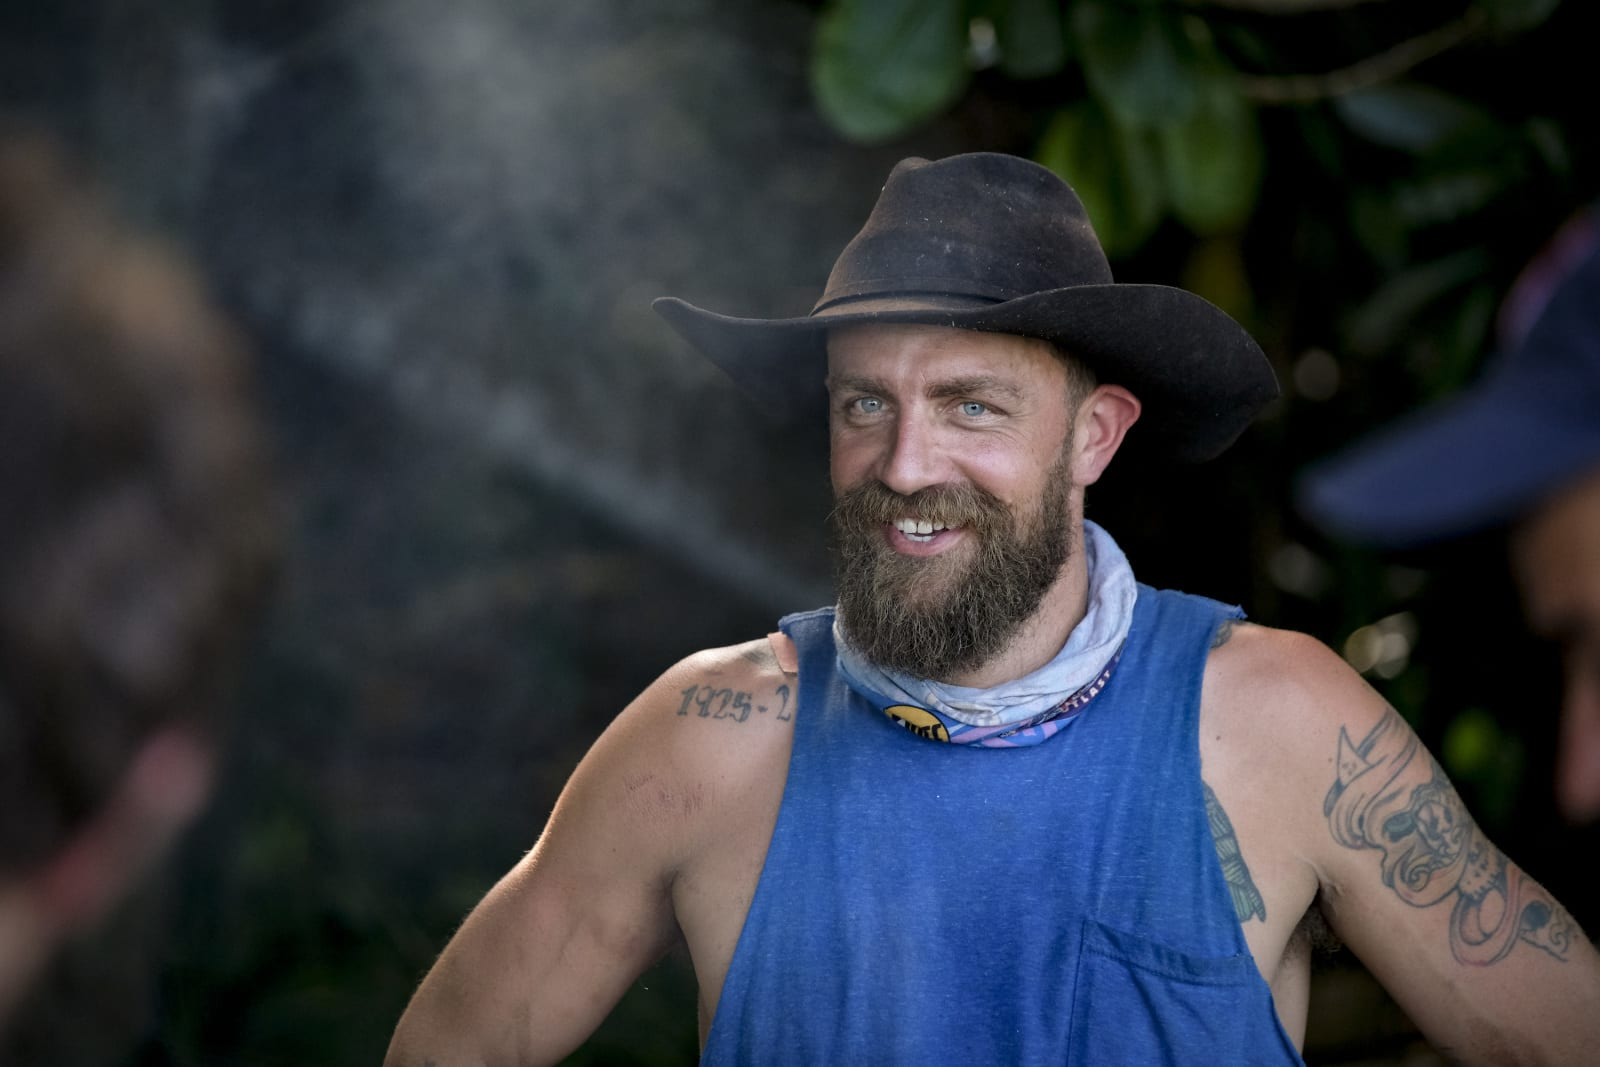 Ben Driebergen Survivor Winners at War episode 2